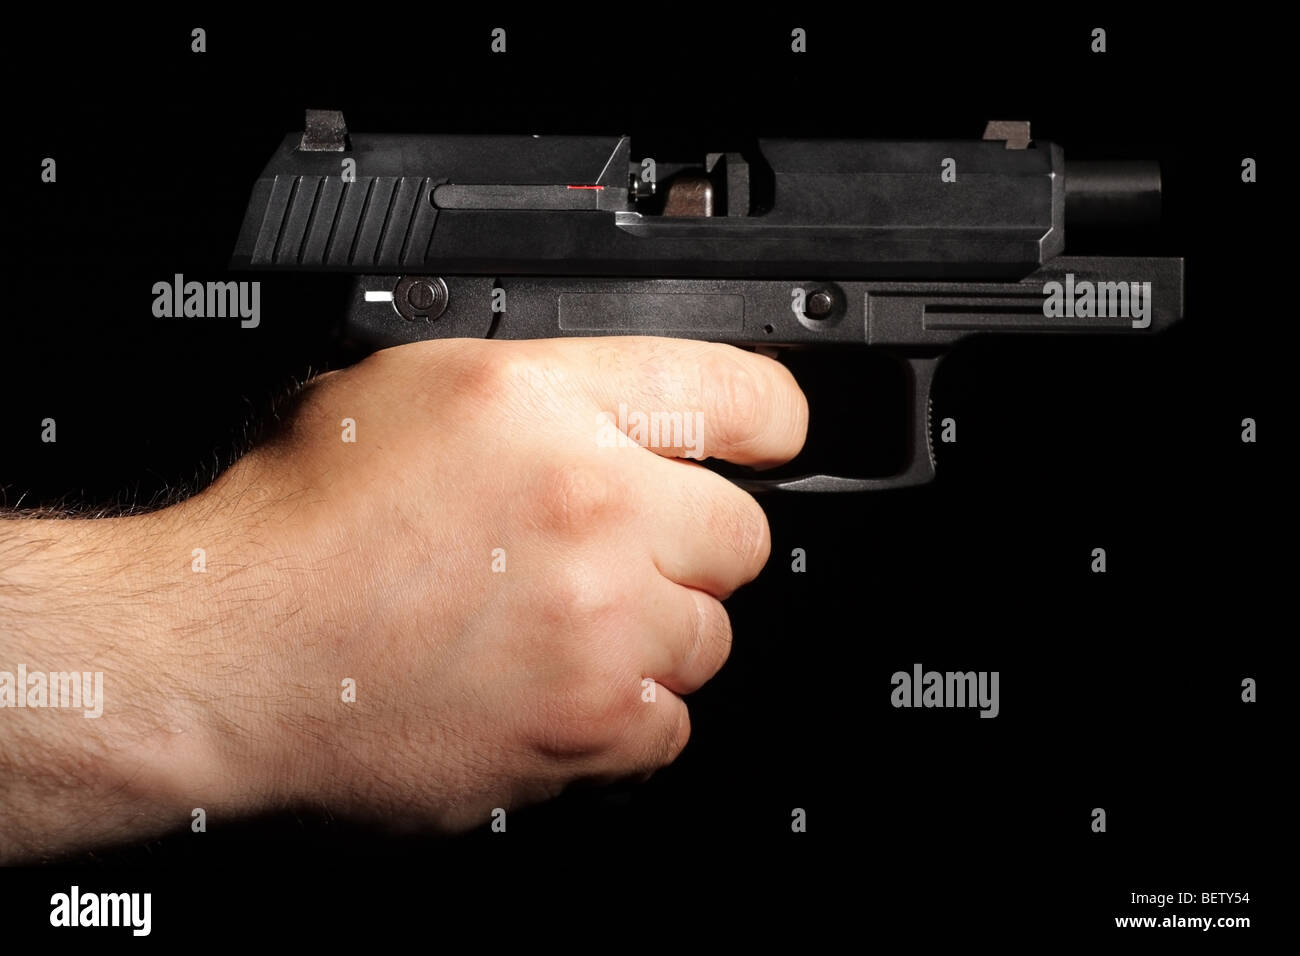 After last shoot. Handgun out of ammo. - Stock Image